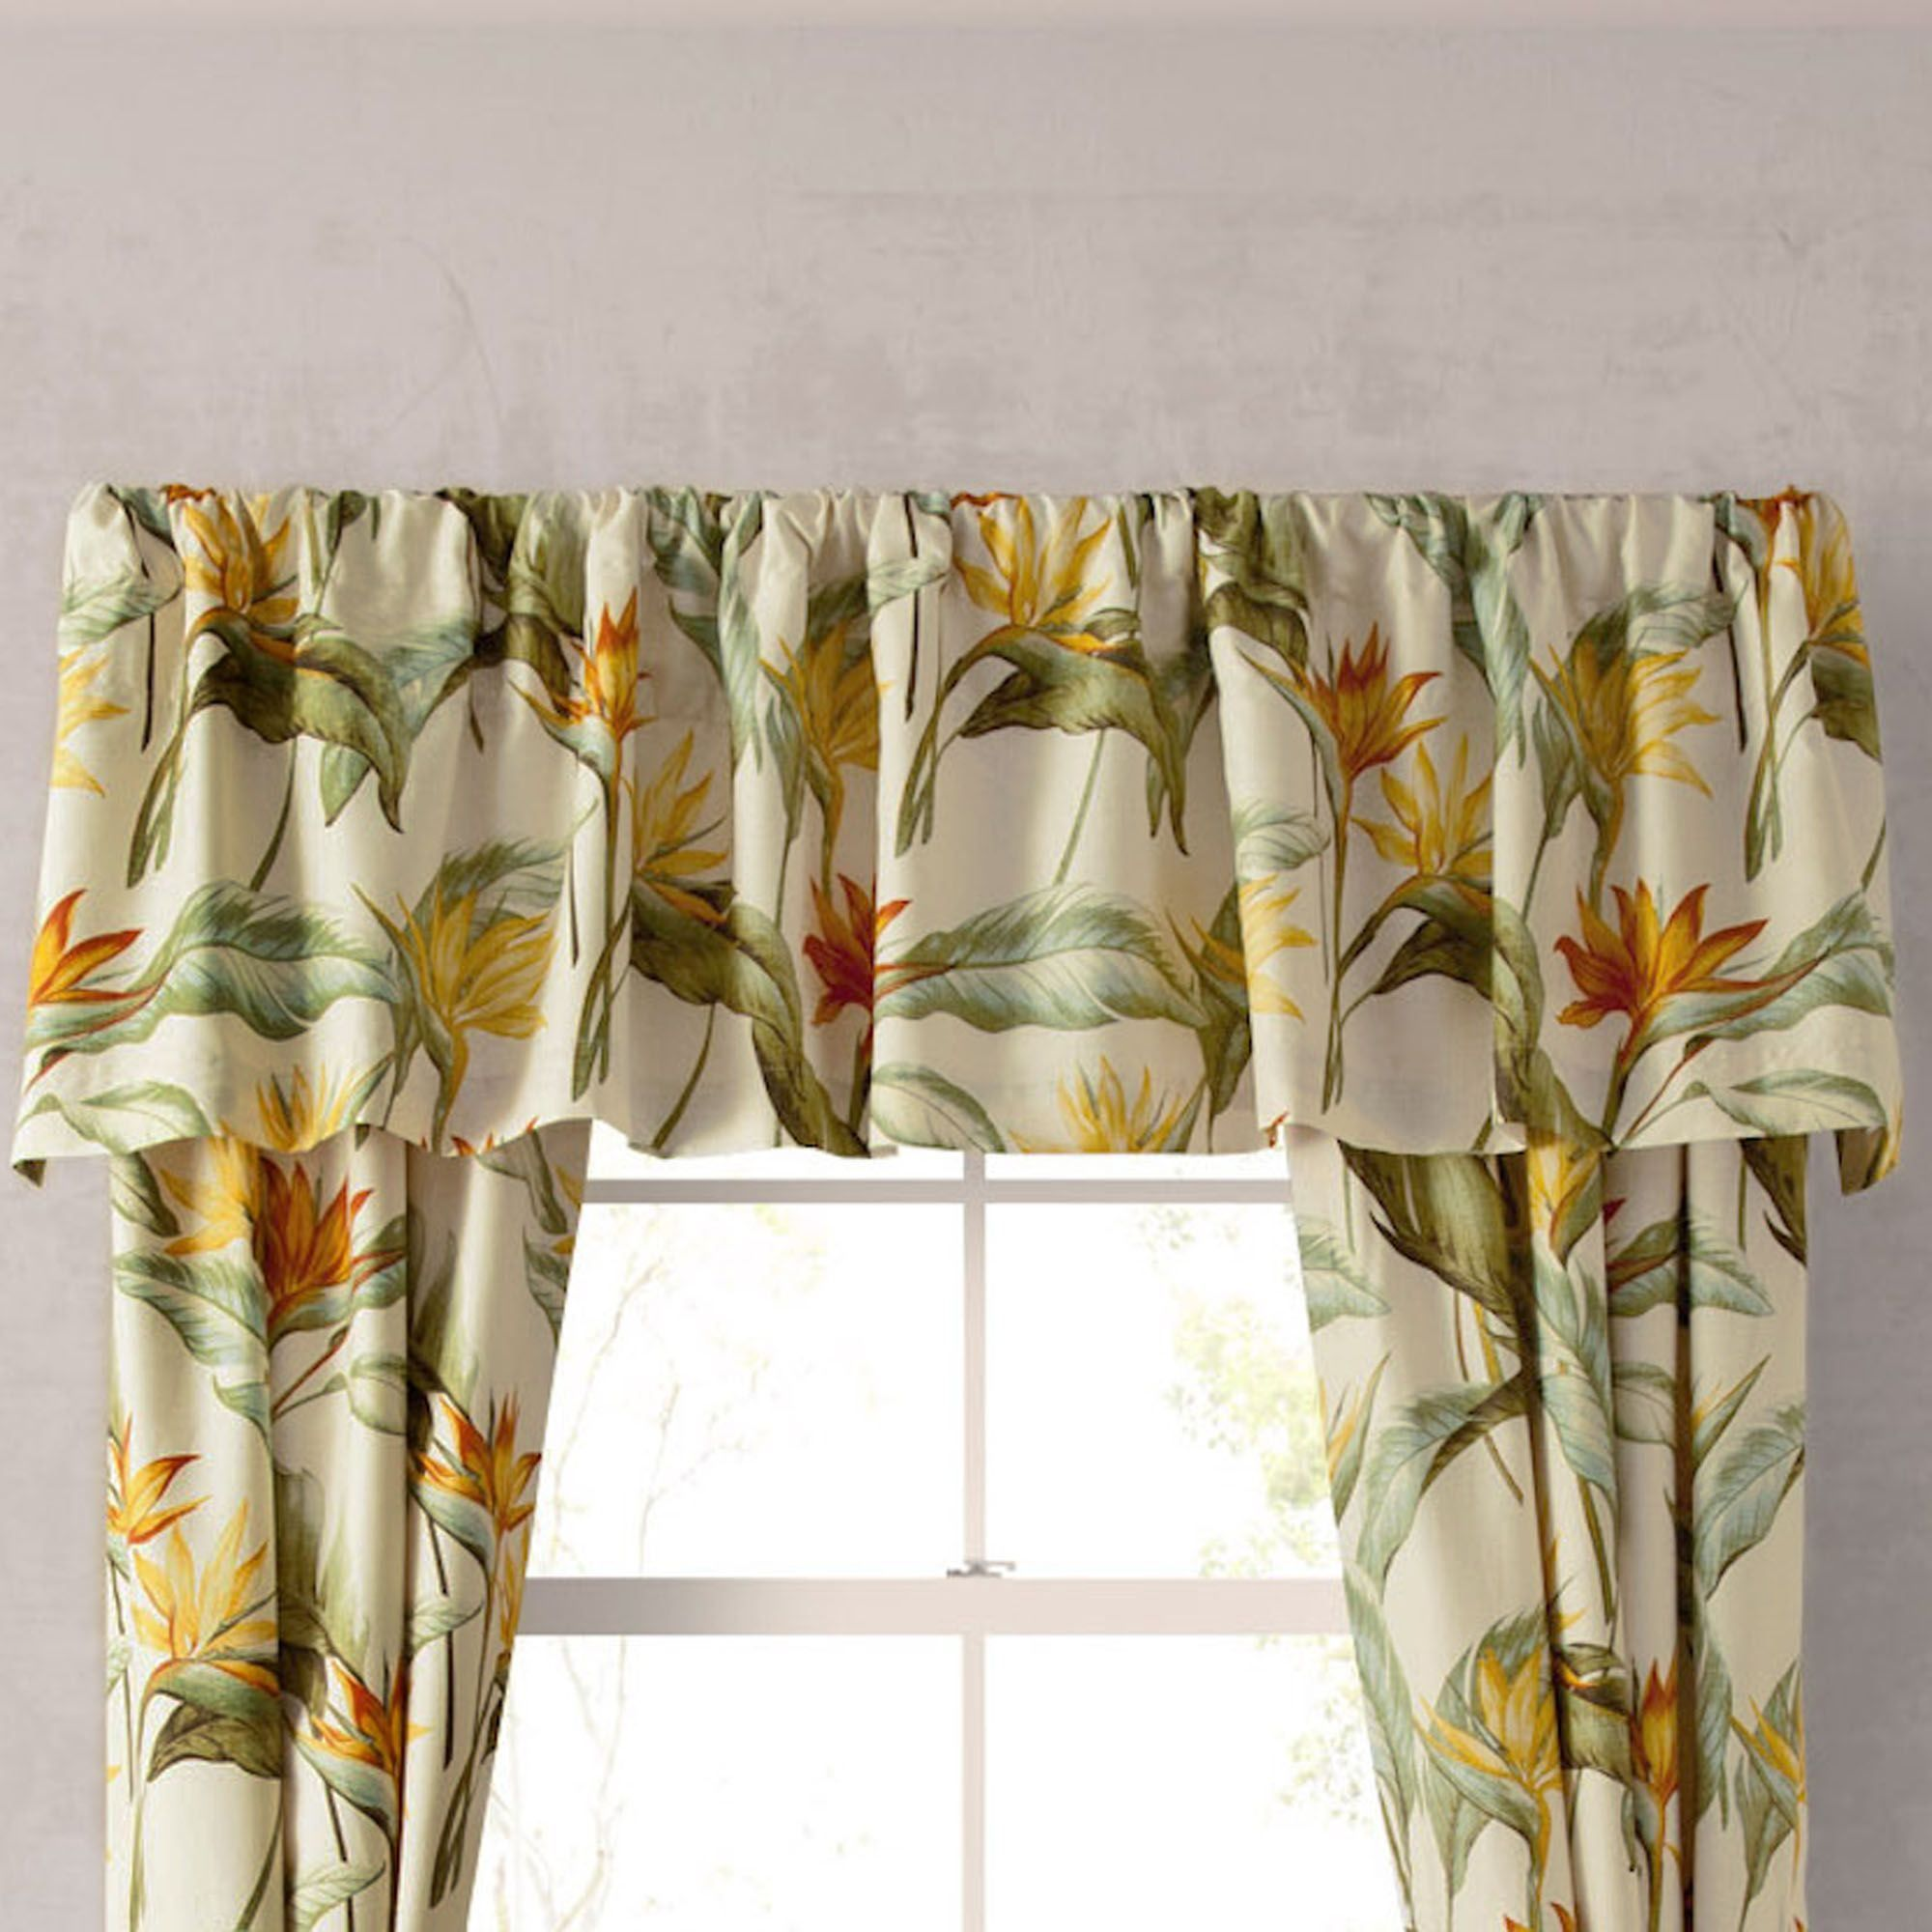 leaf eyelet curtains glam print banana palm shower curtain uk tropical fabric teal